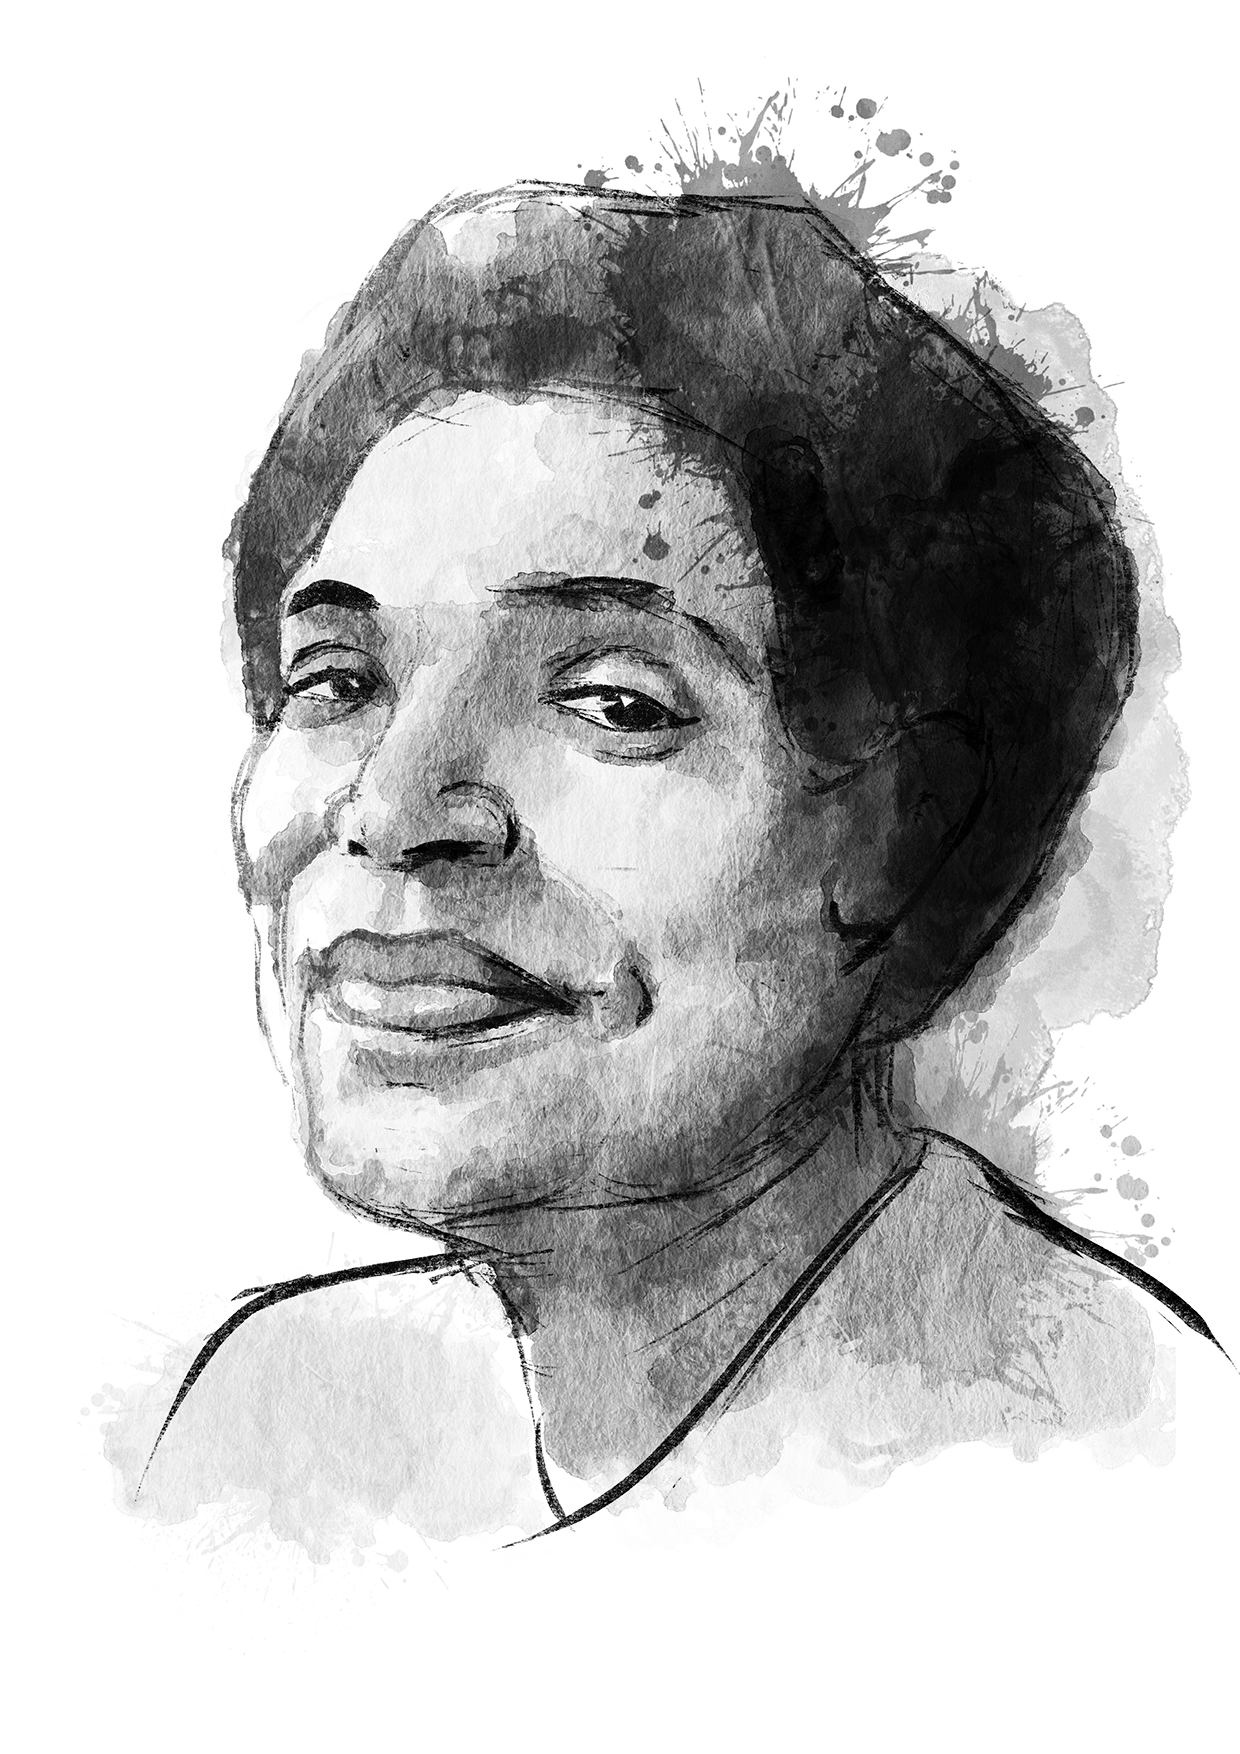 GLSEN LGBTQ+ History Cards - Image of Audre Lorde